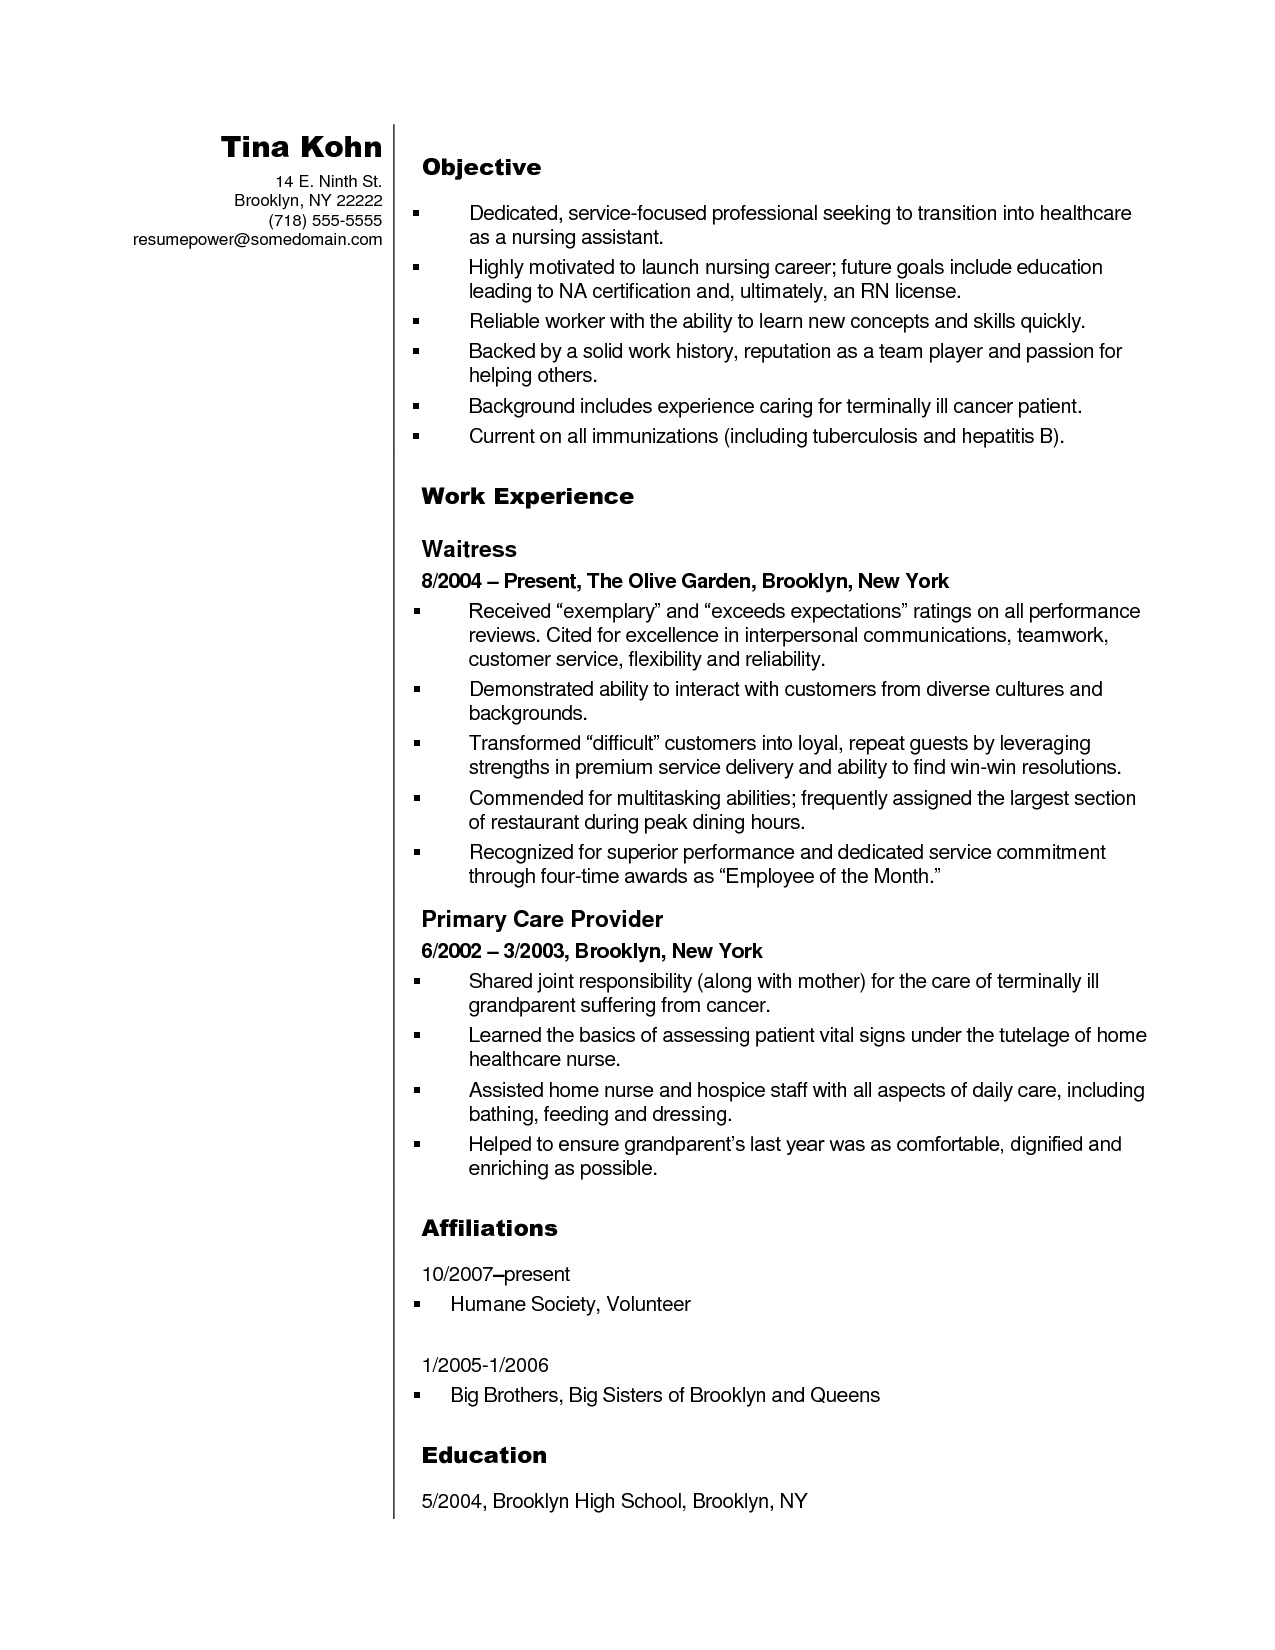 Nurse Aide Resume - Nursing assistant Resume Objective Examples Fresh Cna Resume Sample